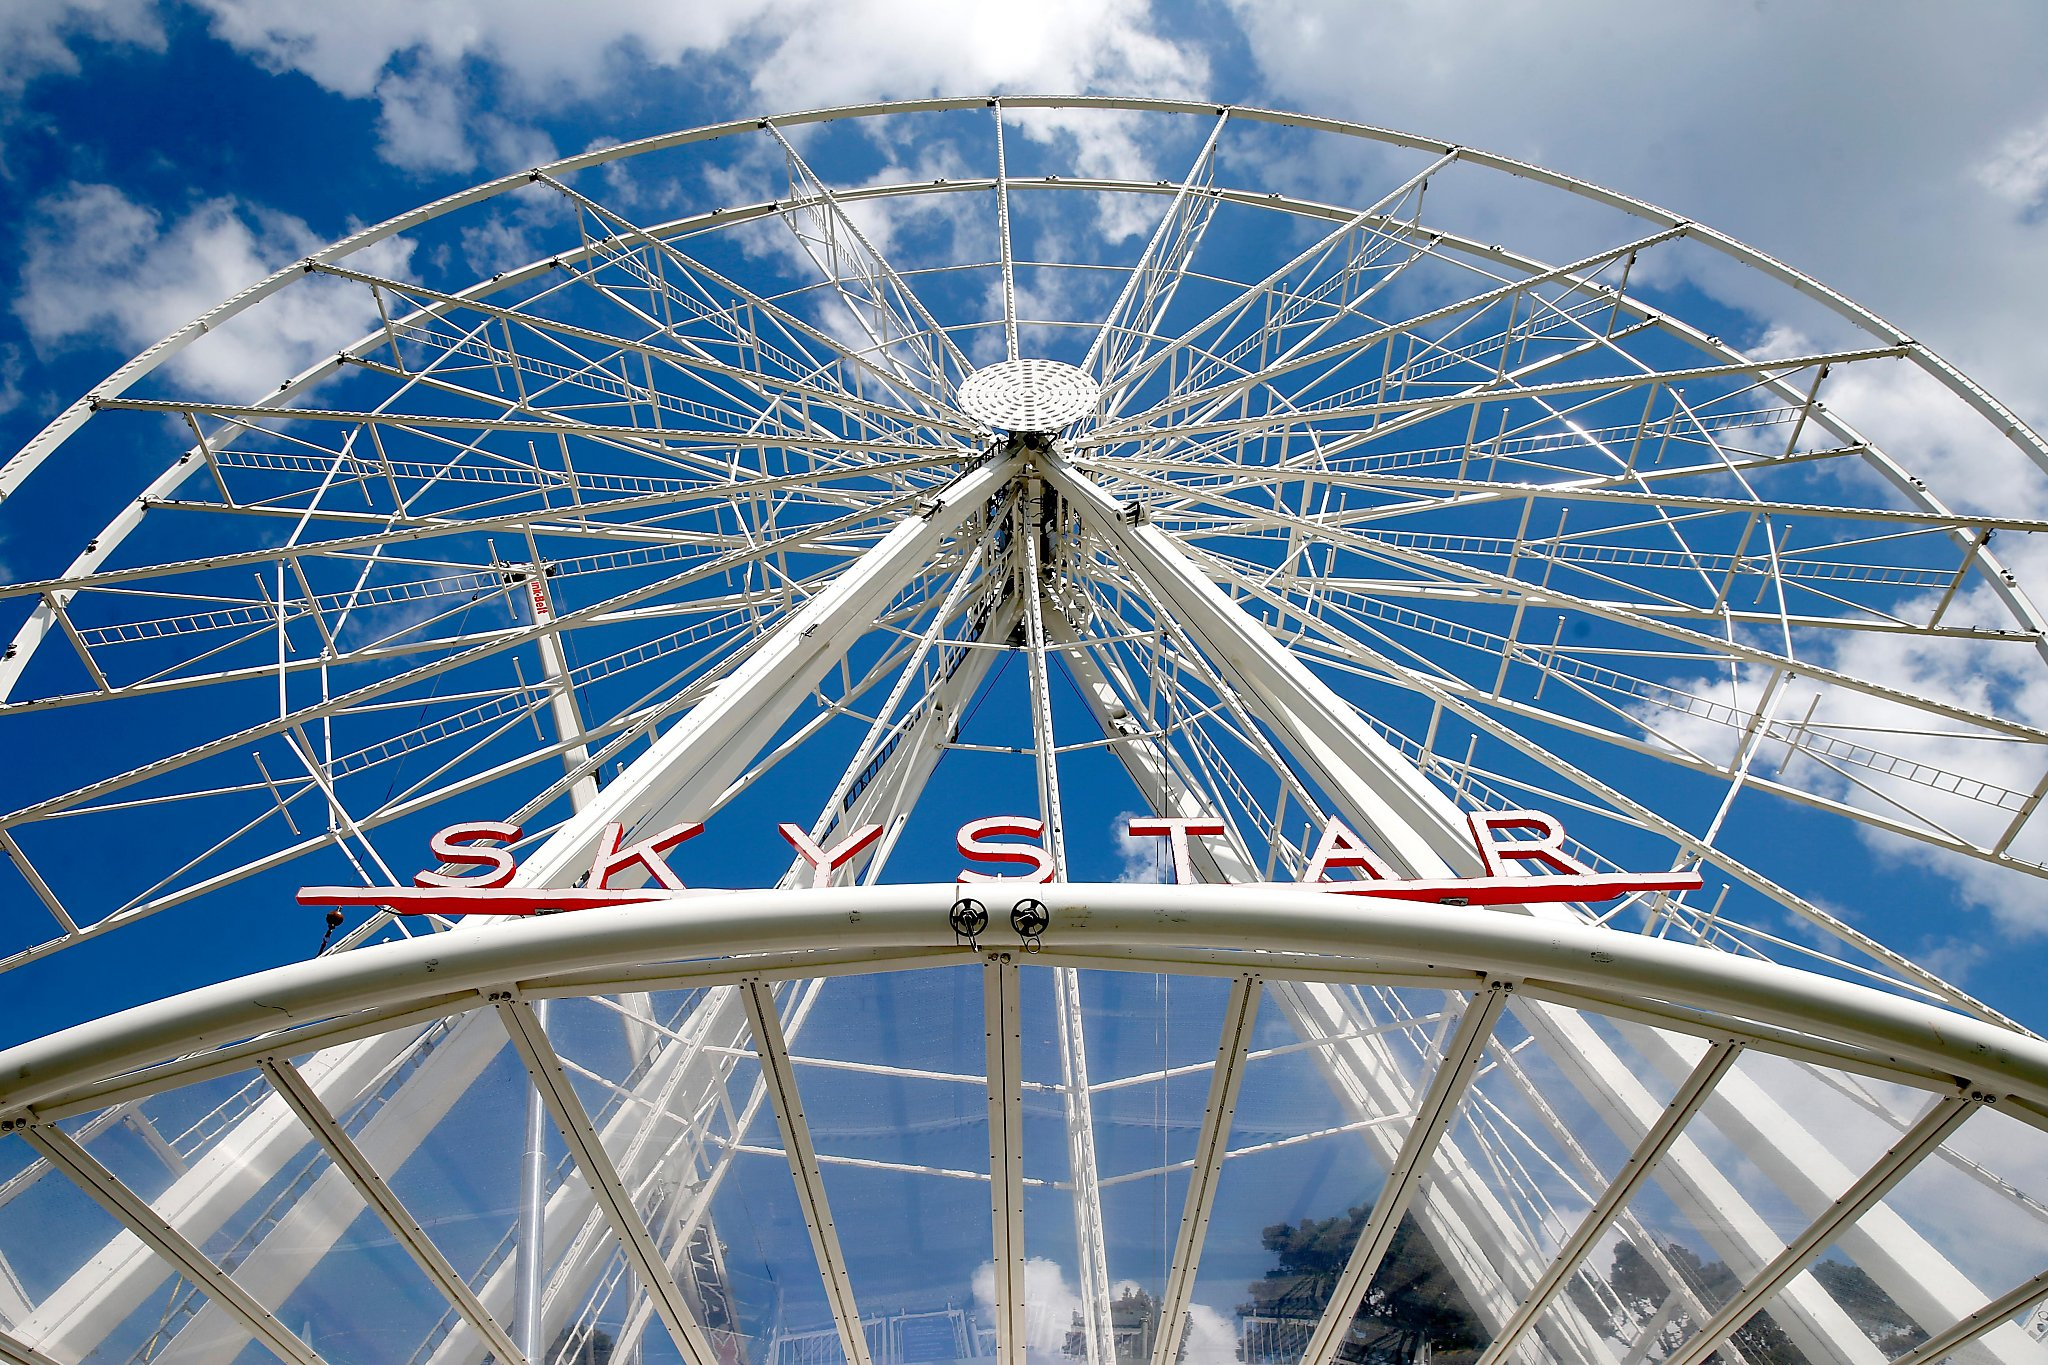 No special ride on giant S.F. Ferris wheel for London Breed. Safety inspection took longer than expected